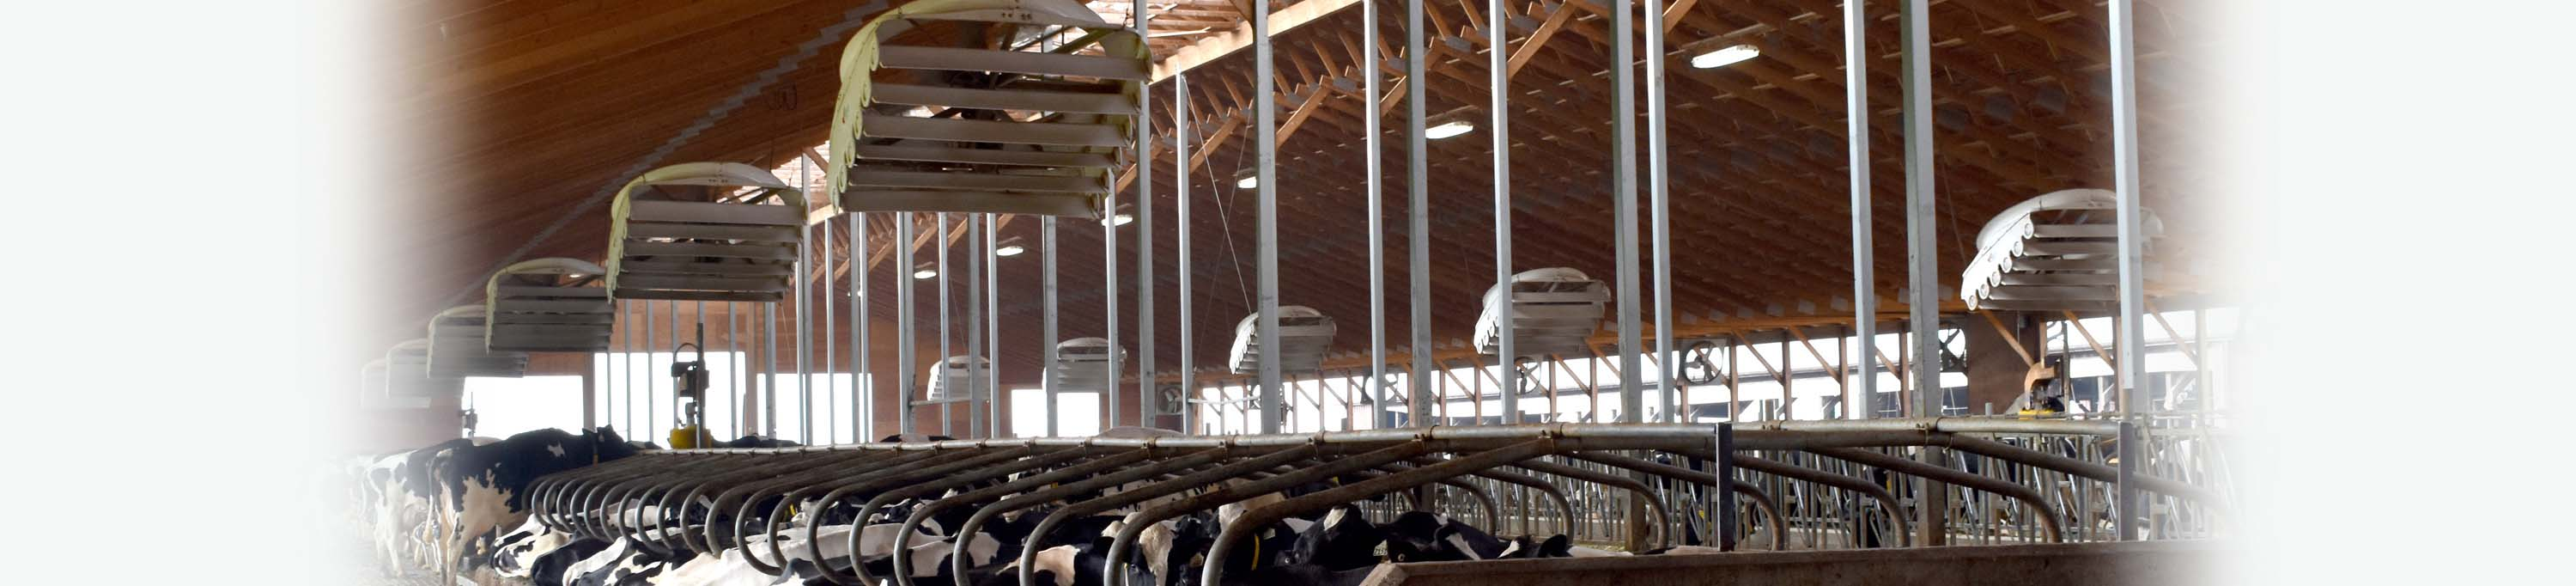 Barn Ventilation | Ventilation Solutions | Artex Cow Comfort Solutions